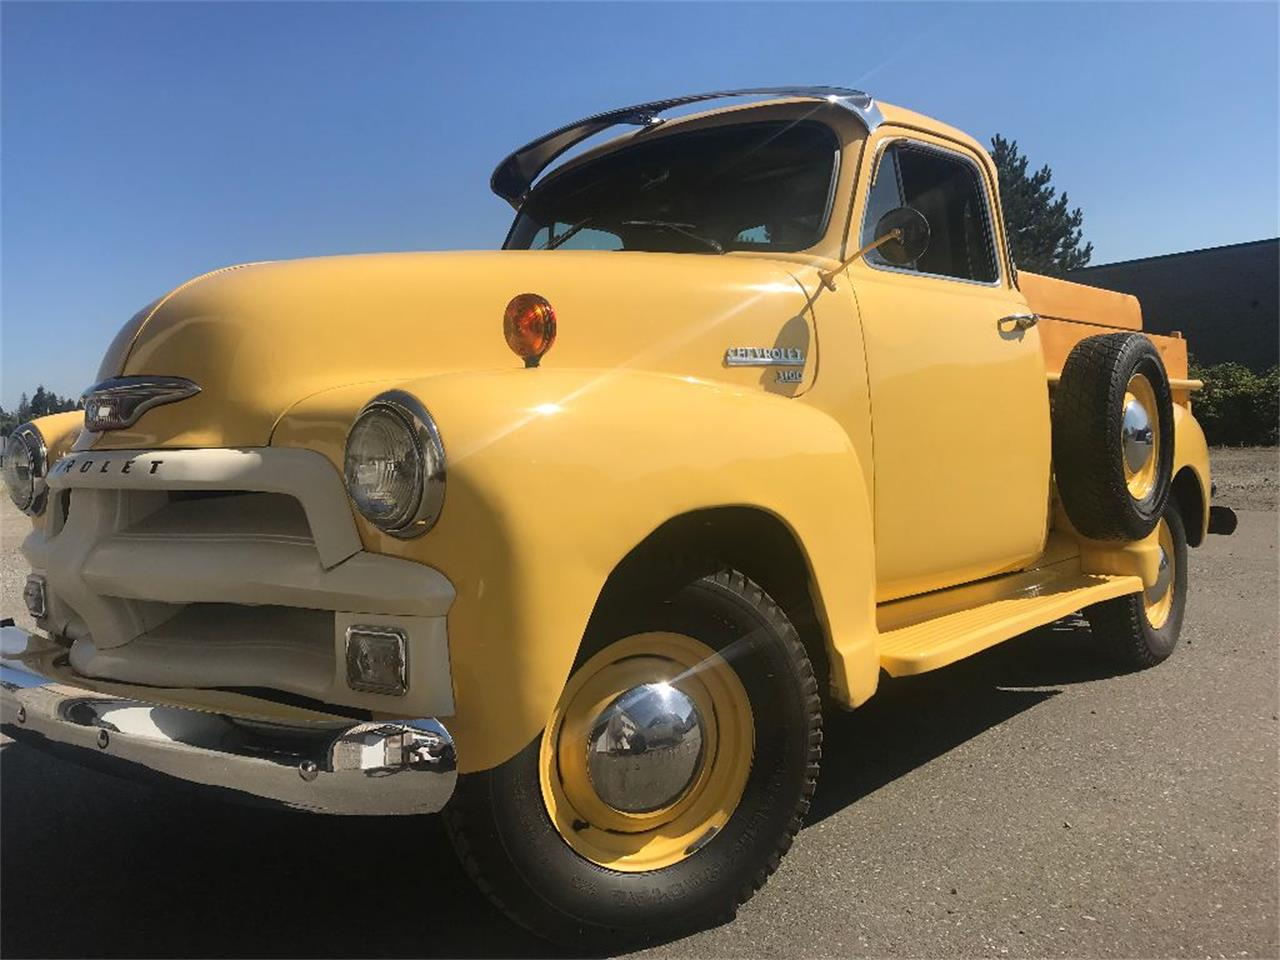 Large Picture of '54 Chevrolet Pickup located in Washington - $34,000.00 Offered by a Private Seller - O7JF